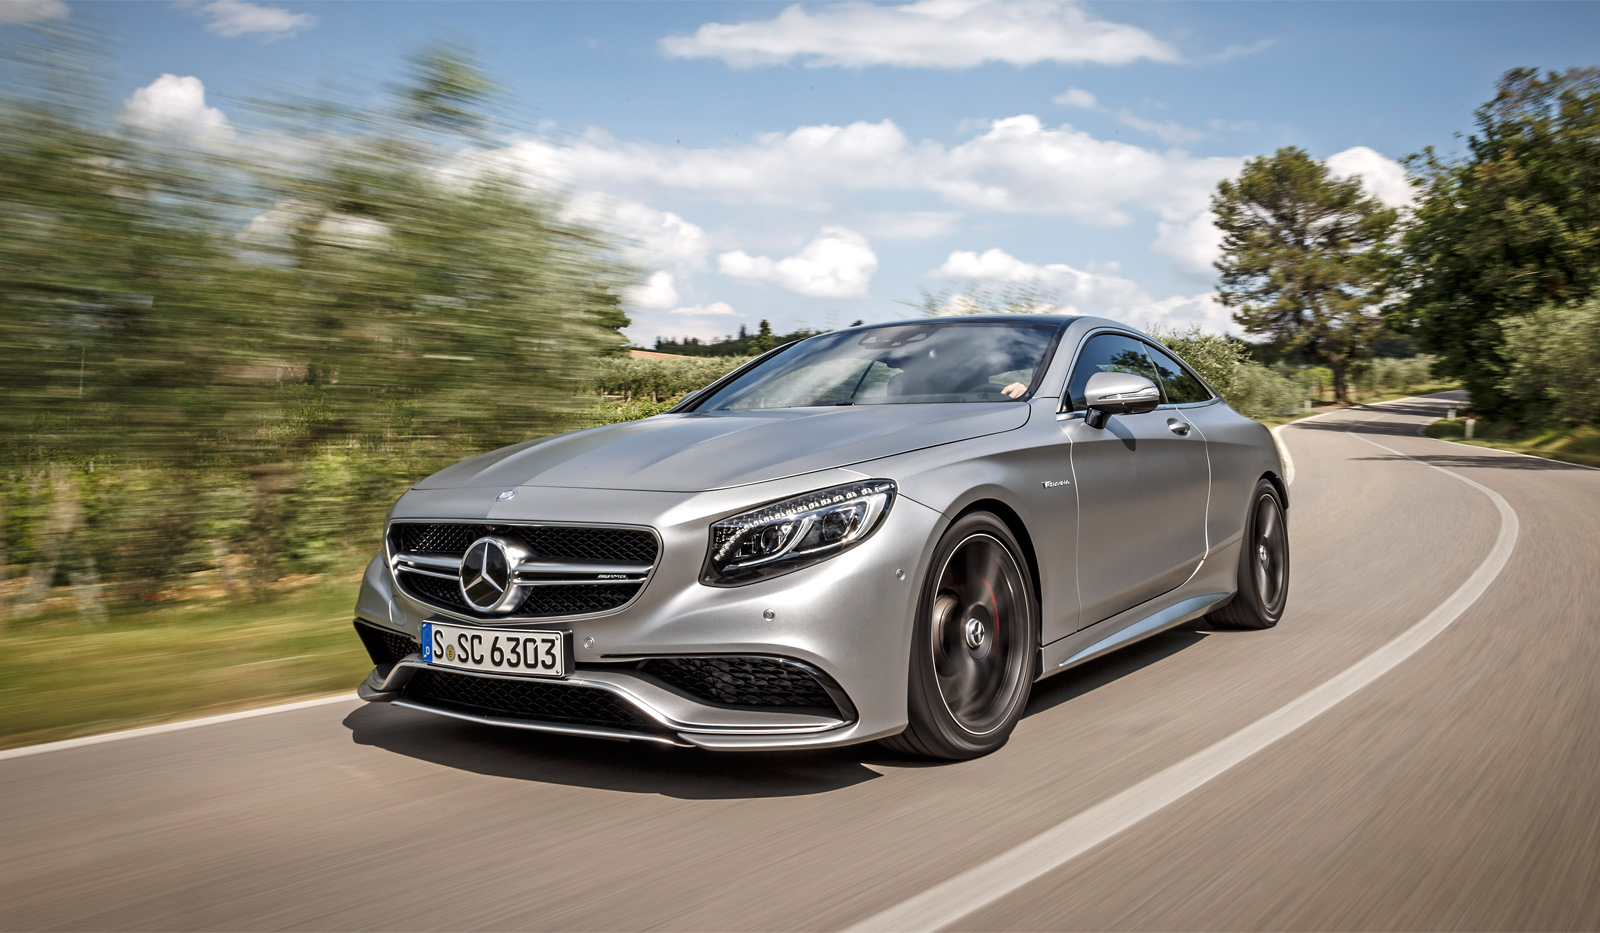 2015 mercedes benz s500 s63 amg coupe review. Black Bedroom Furniture Sets. Home Design Ideas